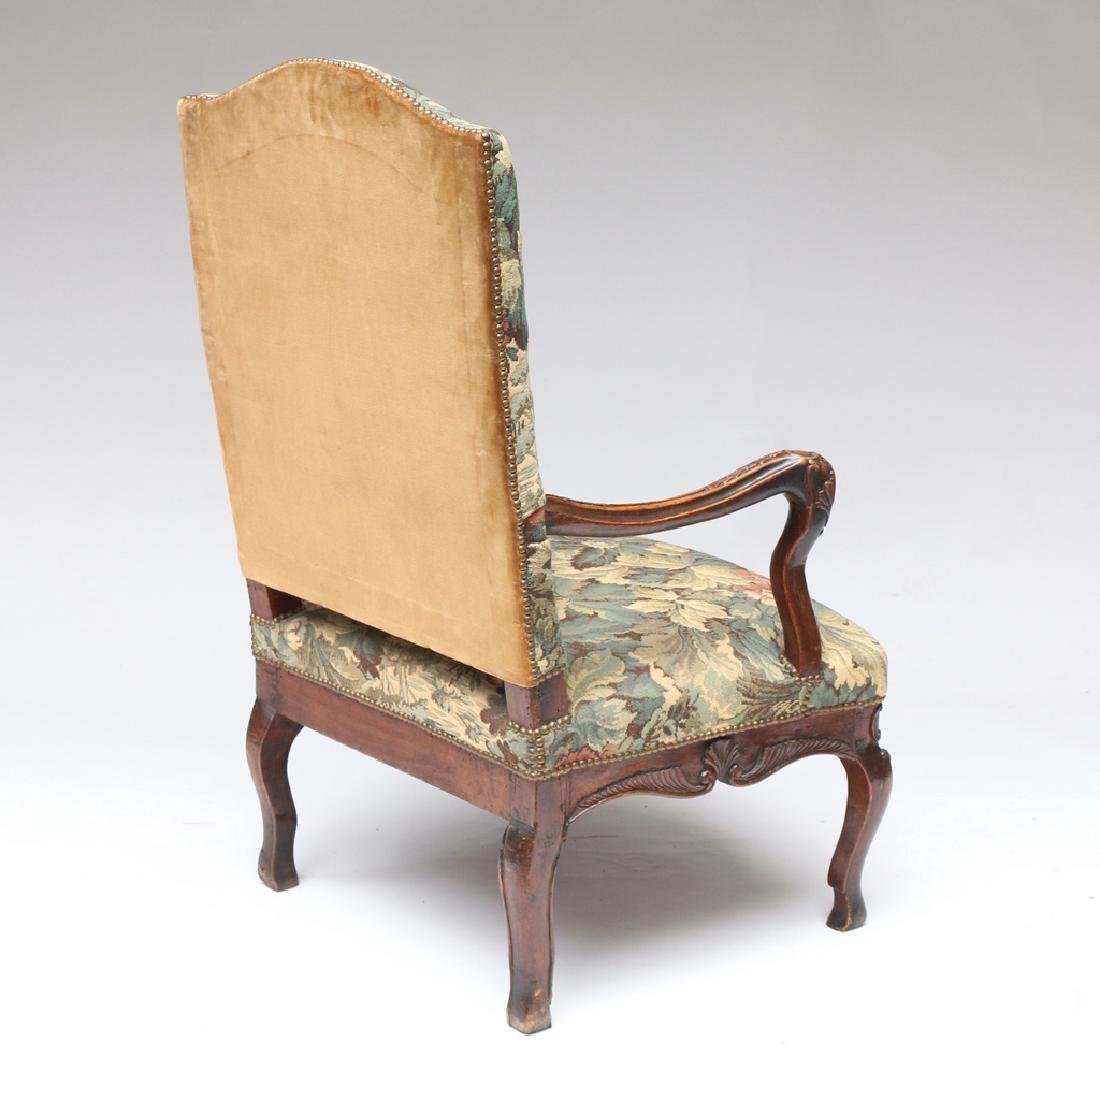 LOUIS XIII-STYLE CARVED WALNUT FAUTEUIL - 6